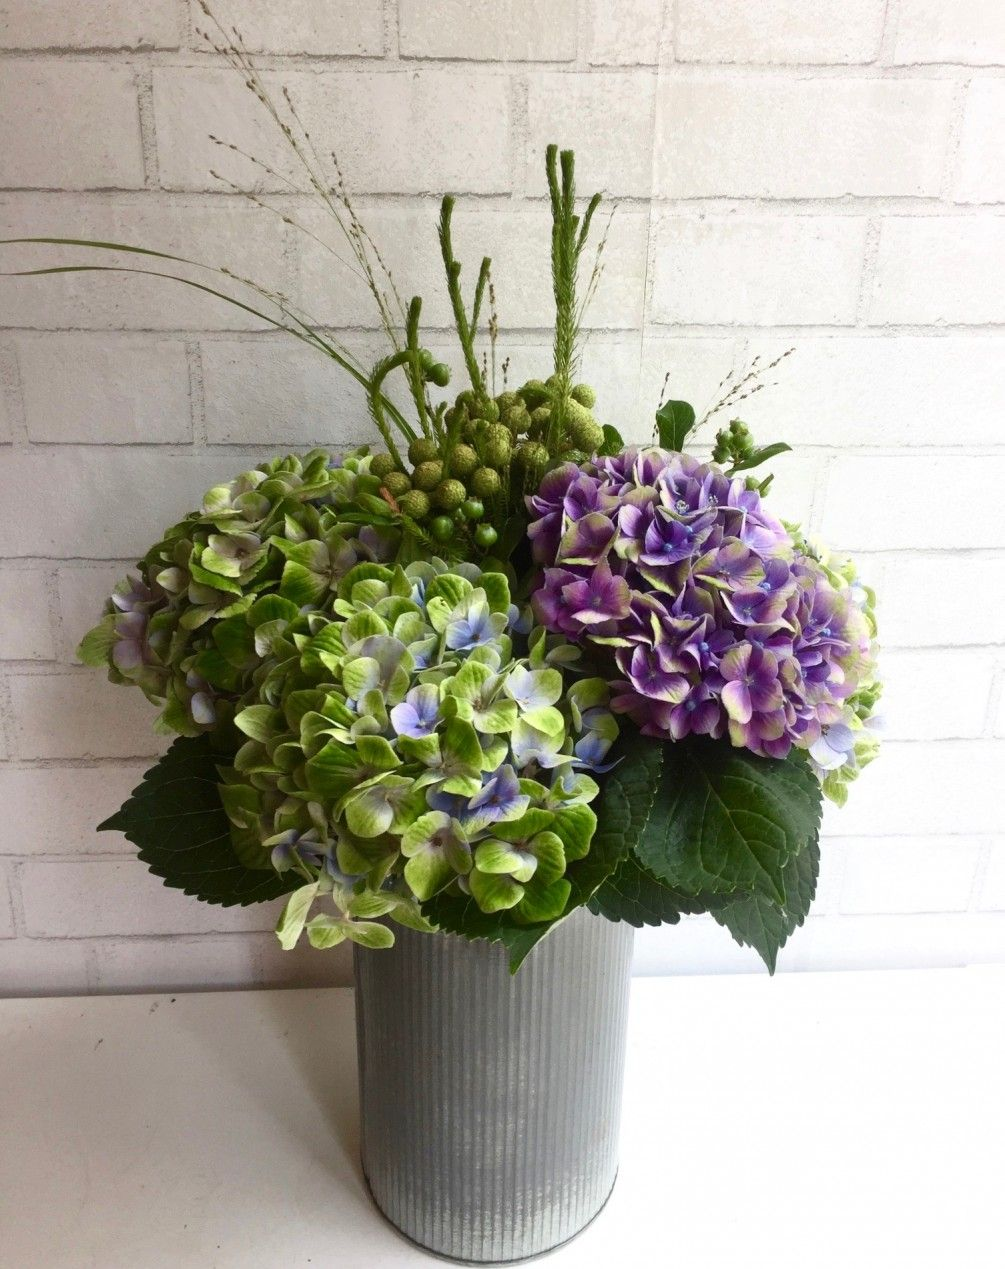 Hydrangea and season flowers in tall vase 16 20 inches tall hydrangea and season flowers in tall vase 16 20 inches tall izmirmasajfo